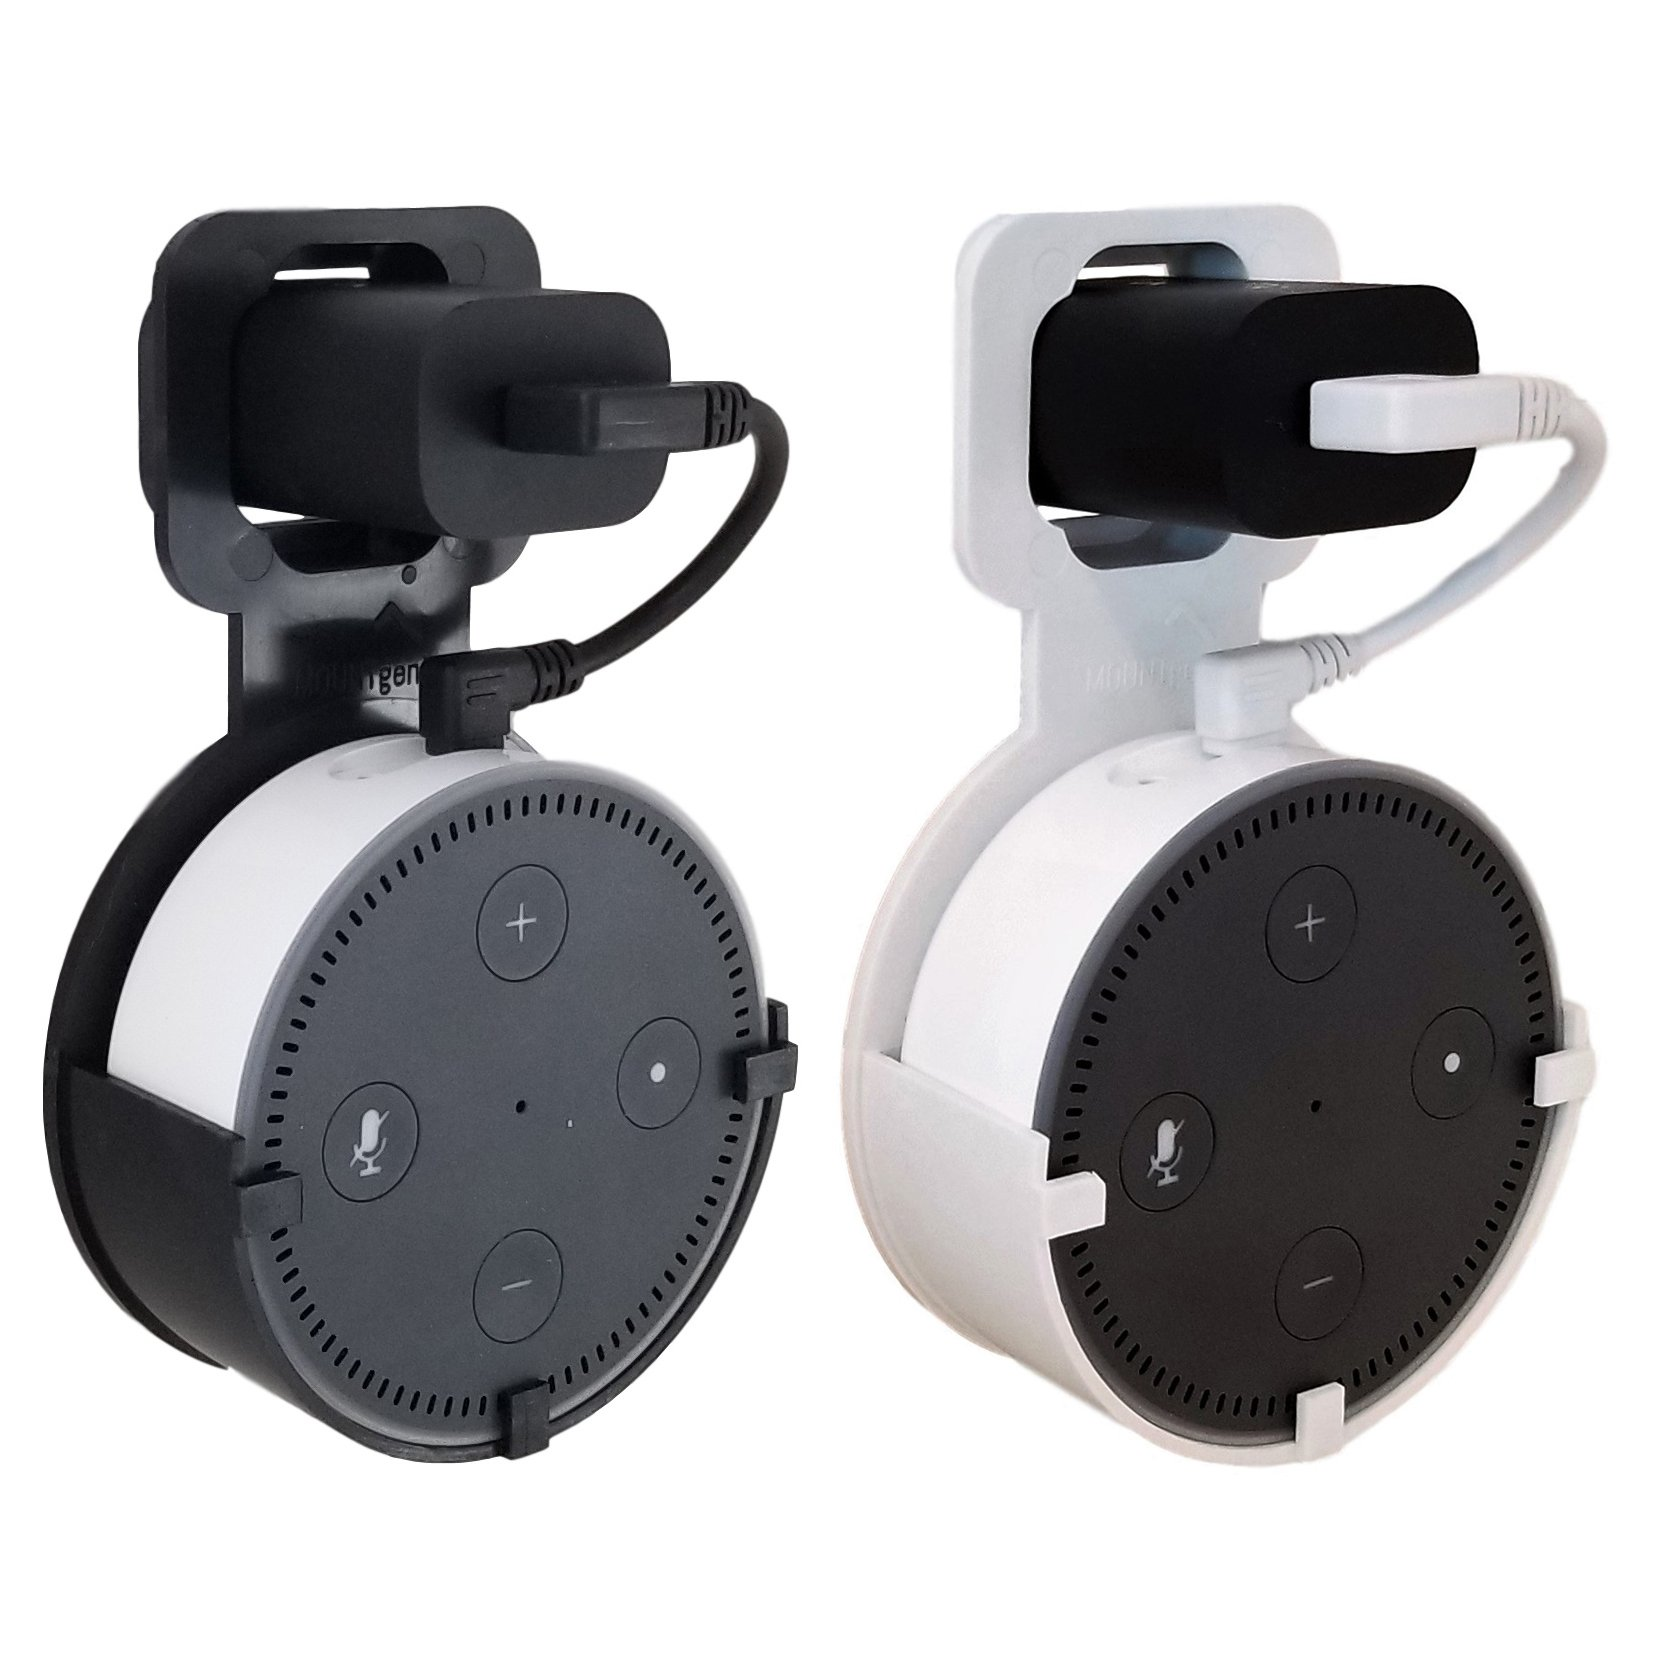 The Spot by Dot Genie: The Original Outlet Wall Mount Hanger Stand for Home Voice Assistants - Designed in USA - No Messy Wires or Screws - Multiple Colors (Black & White 2-Pack)